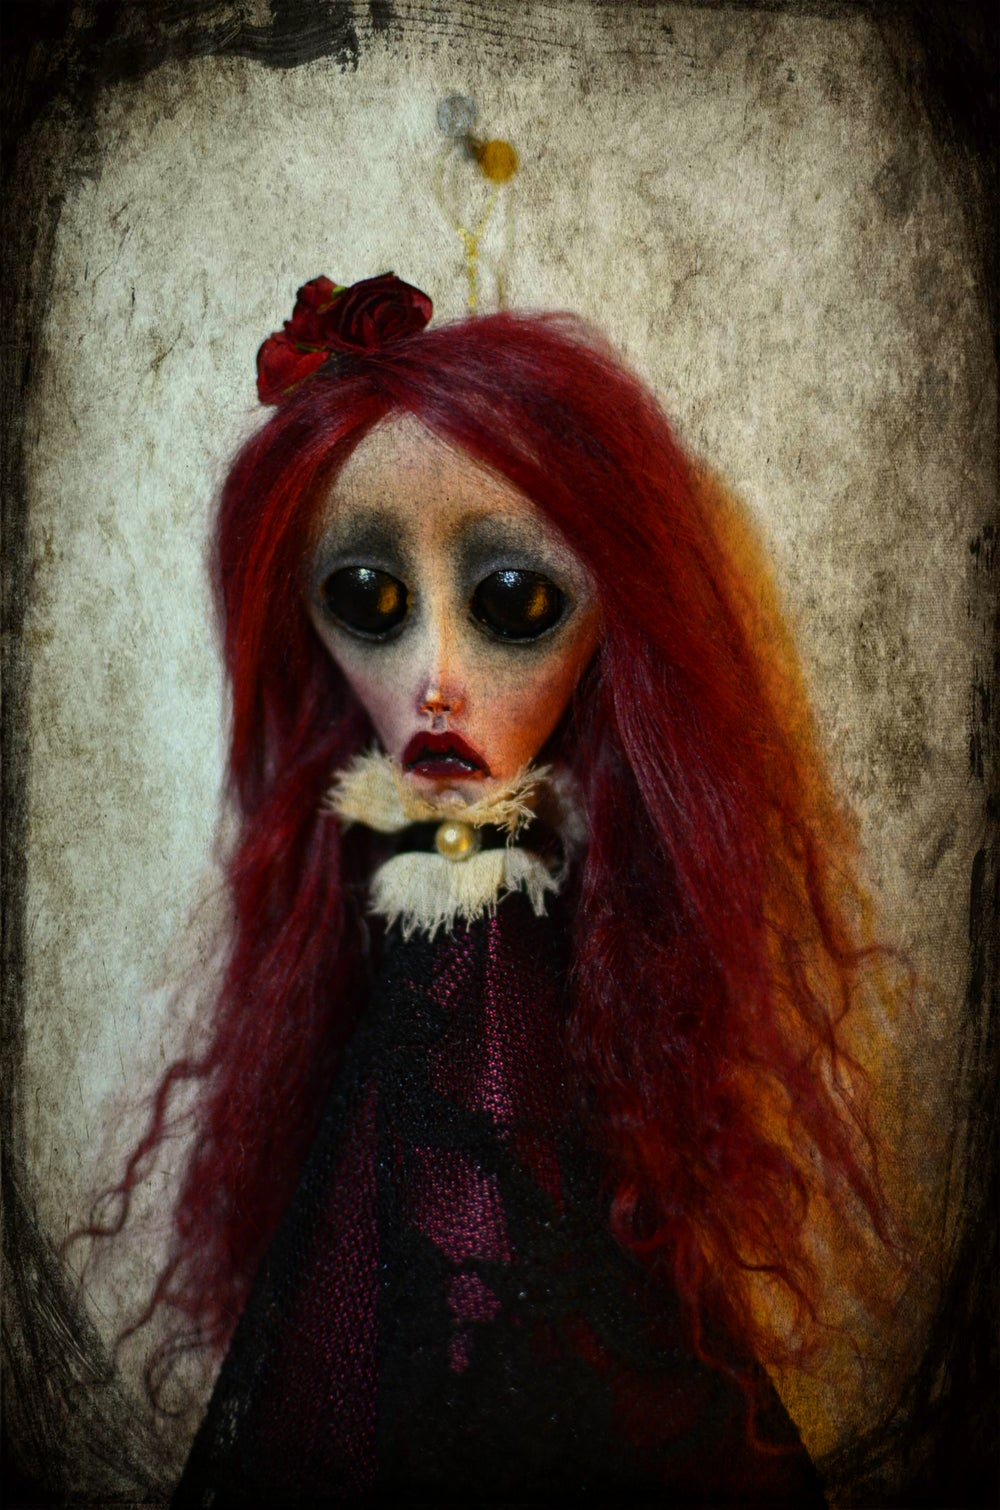 Image of *Custom order* OOAK Handmade art doll head ornament EMBERLYNN. Ghost doll, dark doll, gothic doll